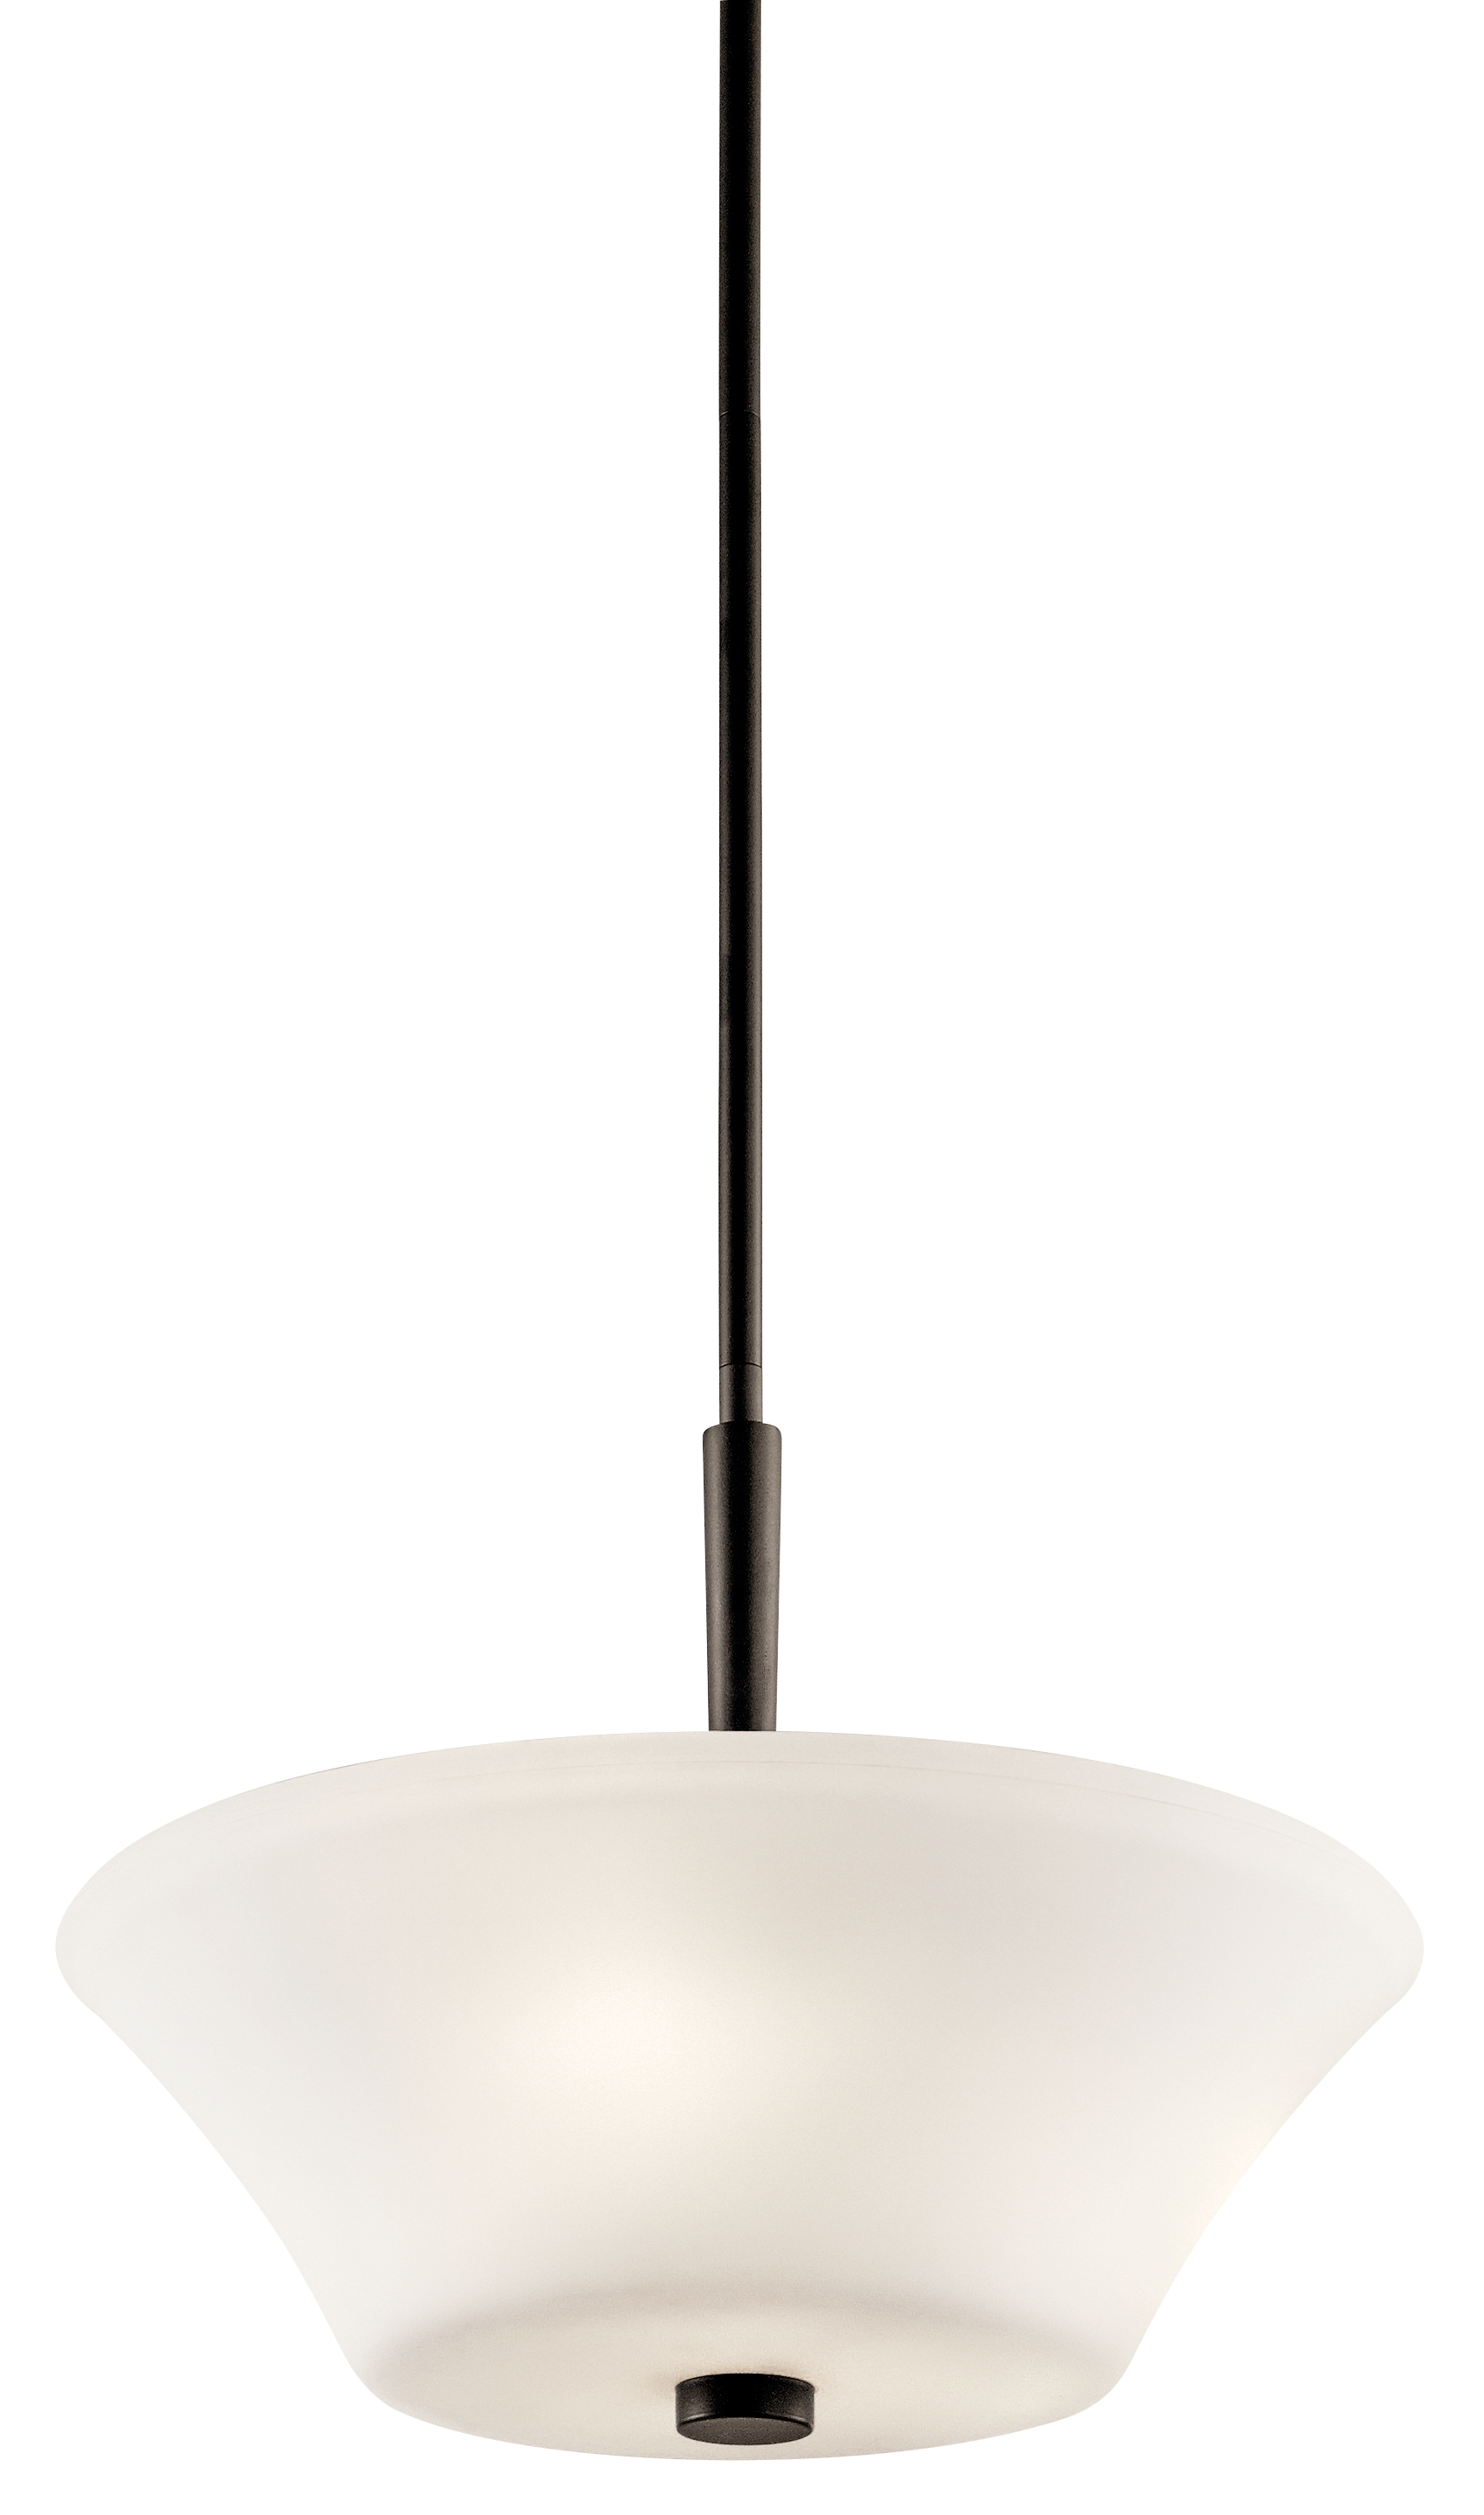 Kichler Aubrey LED Flush Light with Satin Etched Painted White Inside Shade - Olde Bronze (43669OZL16)